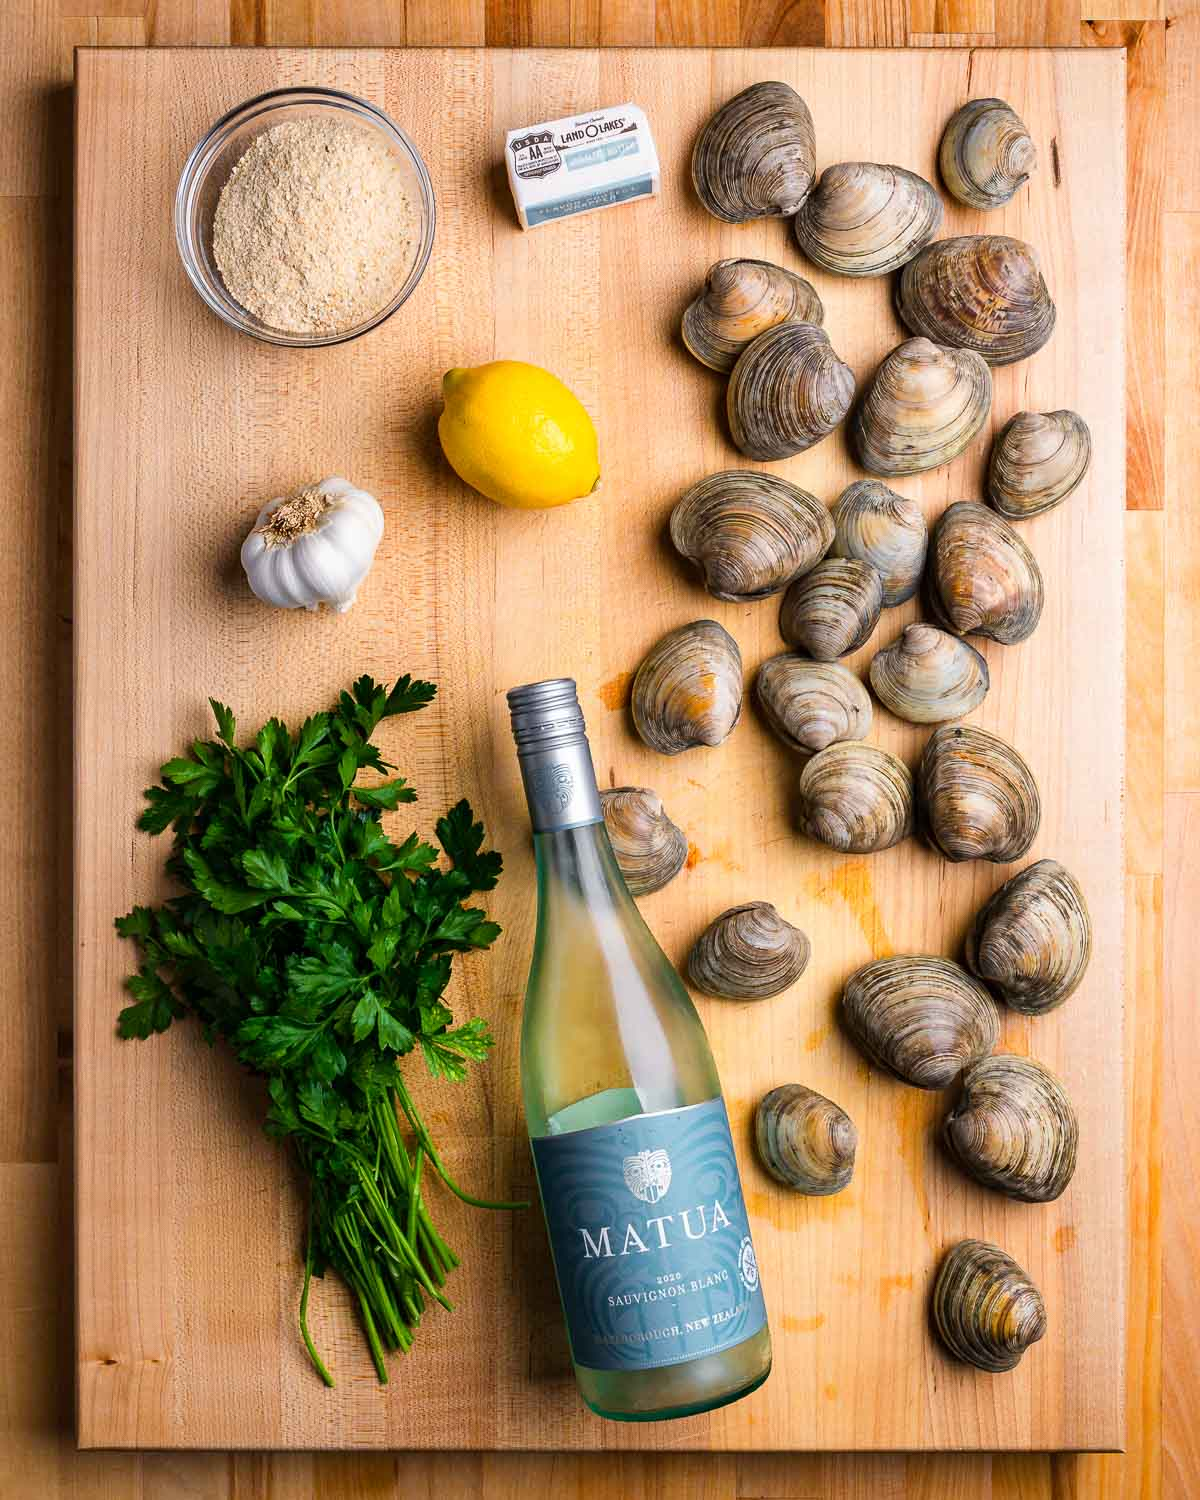 Ingredients shown: breadcrumbs, butter, Littleneck clams, lemon, garlic, parsley, and white wine.